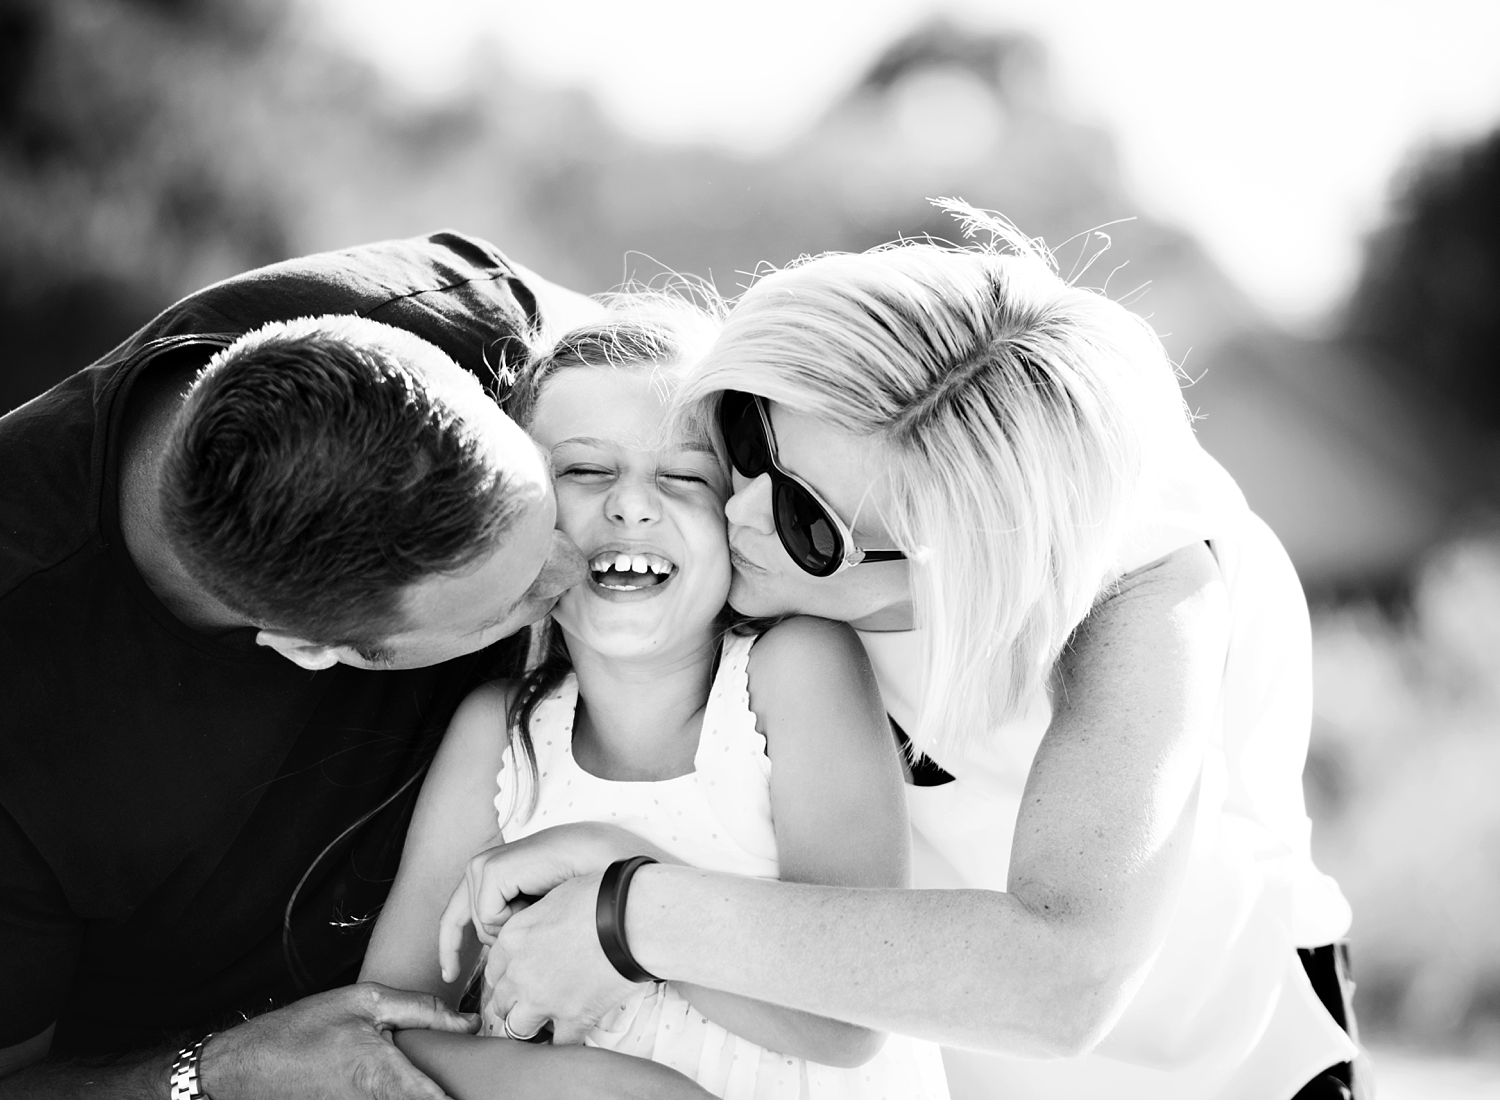 bec-stewart-photography-extended-family-photography-session-melbourne-australia-city-of-casey-16.jpg